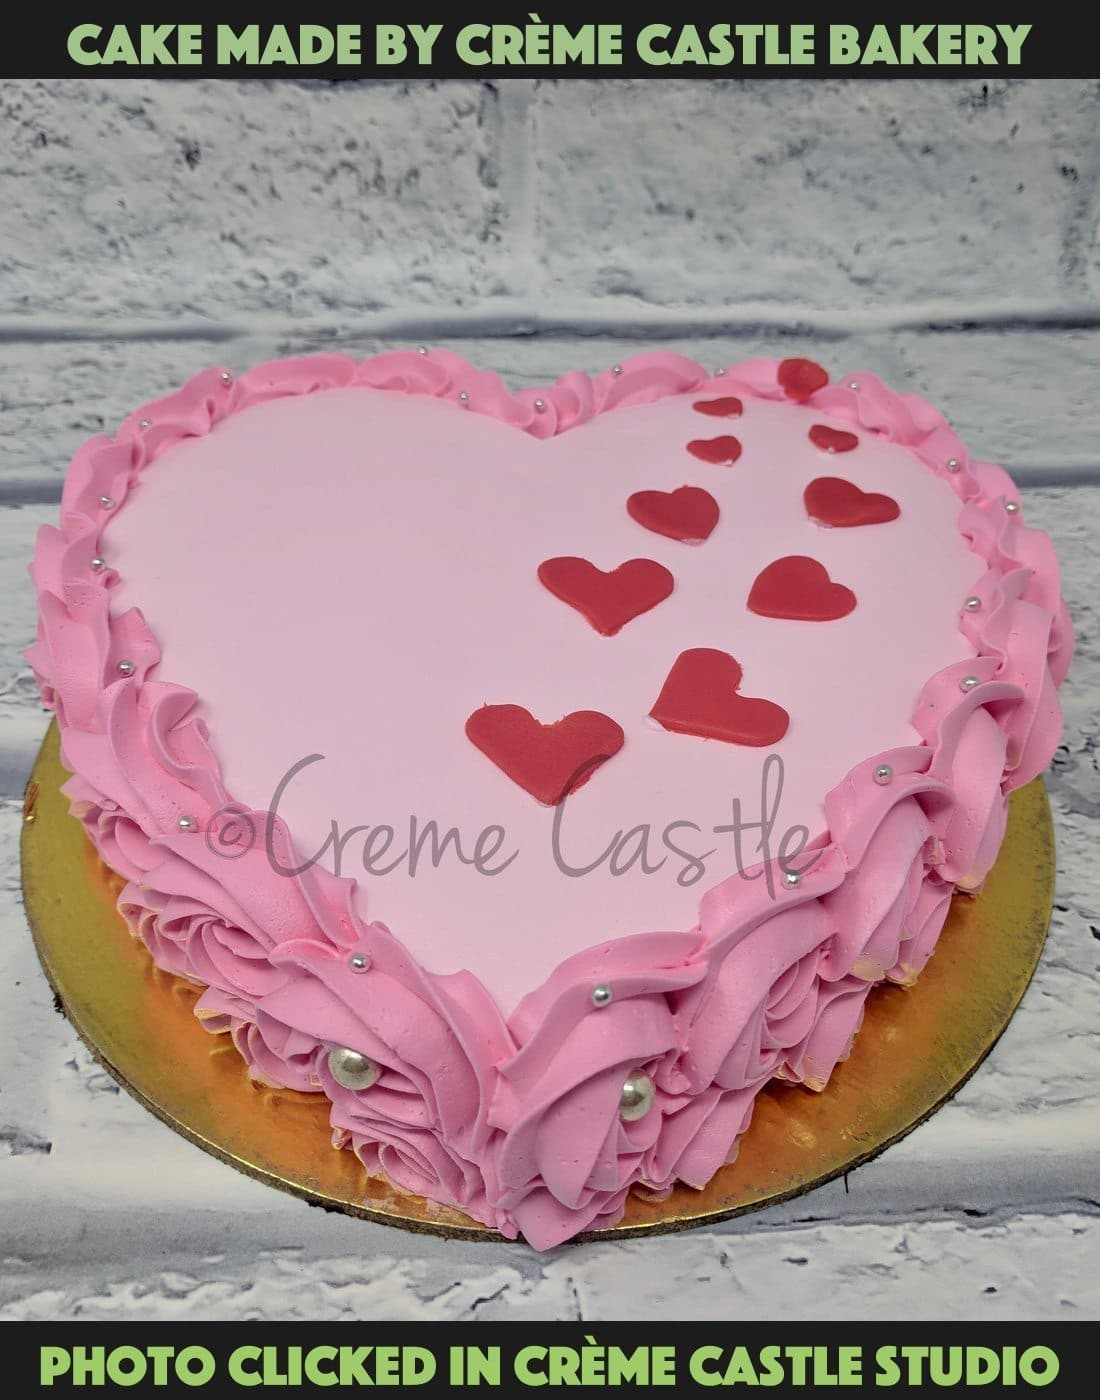 Pink Hearts on Heart - cremecastle